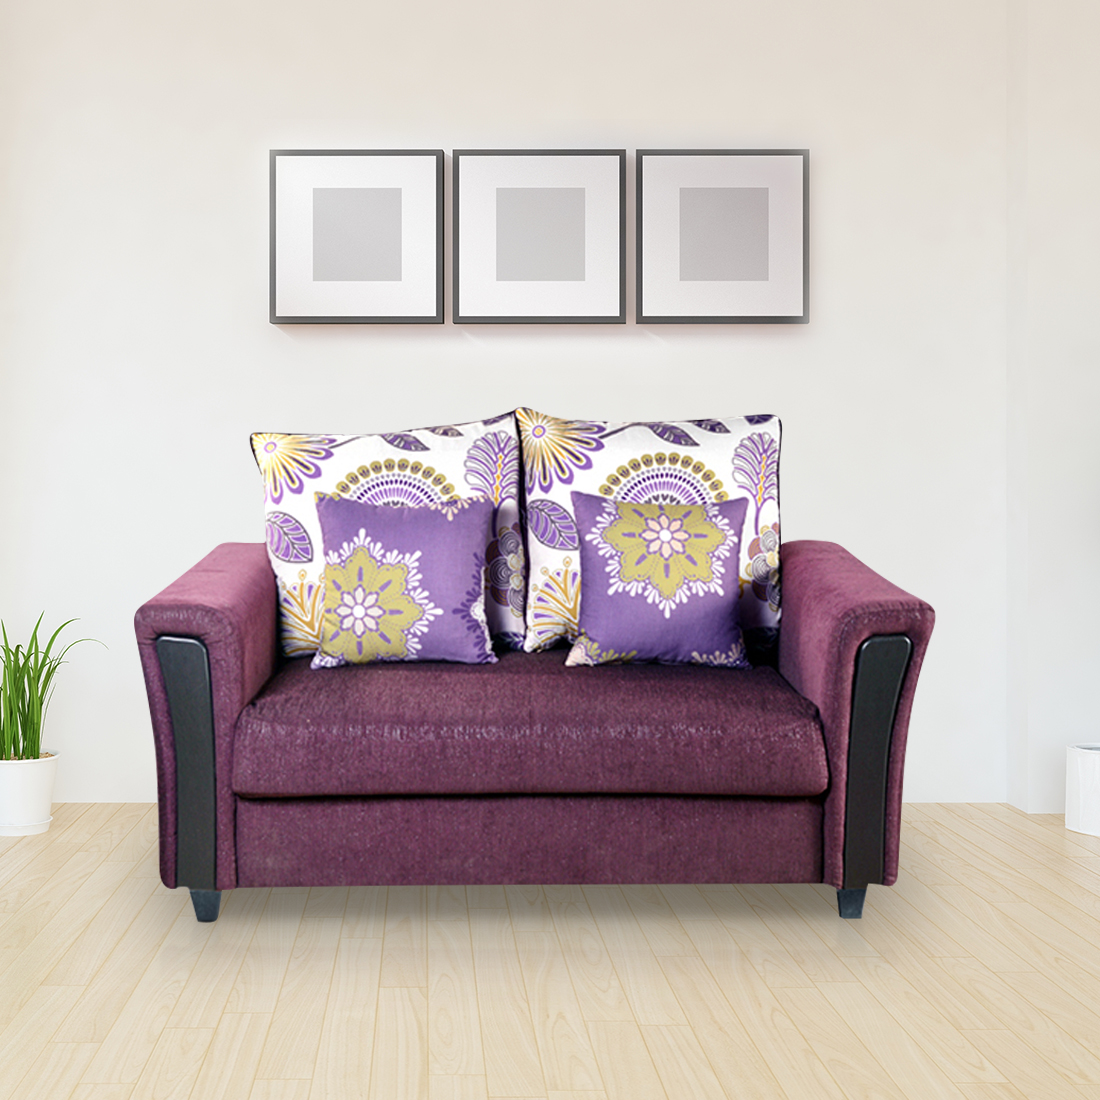 Savanna Fabric Two Seater Sofa in Wine Colour by HomeTown